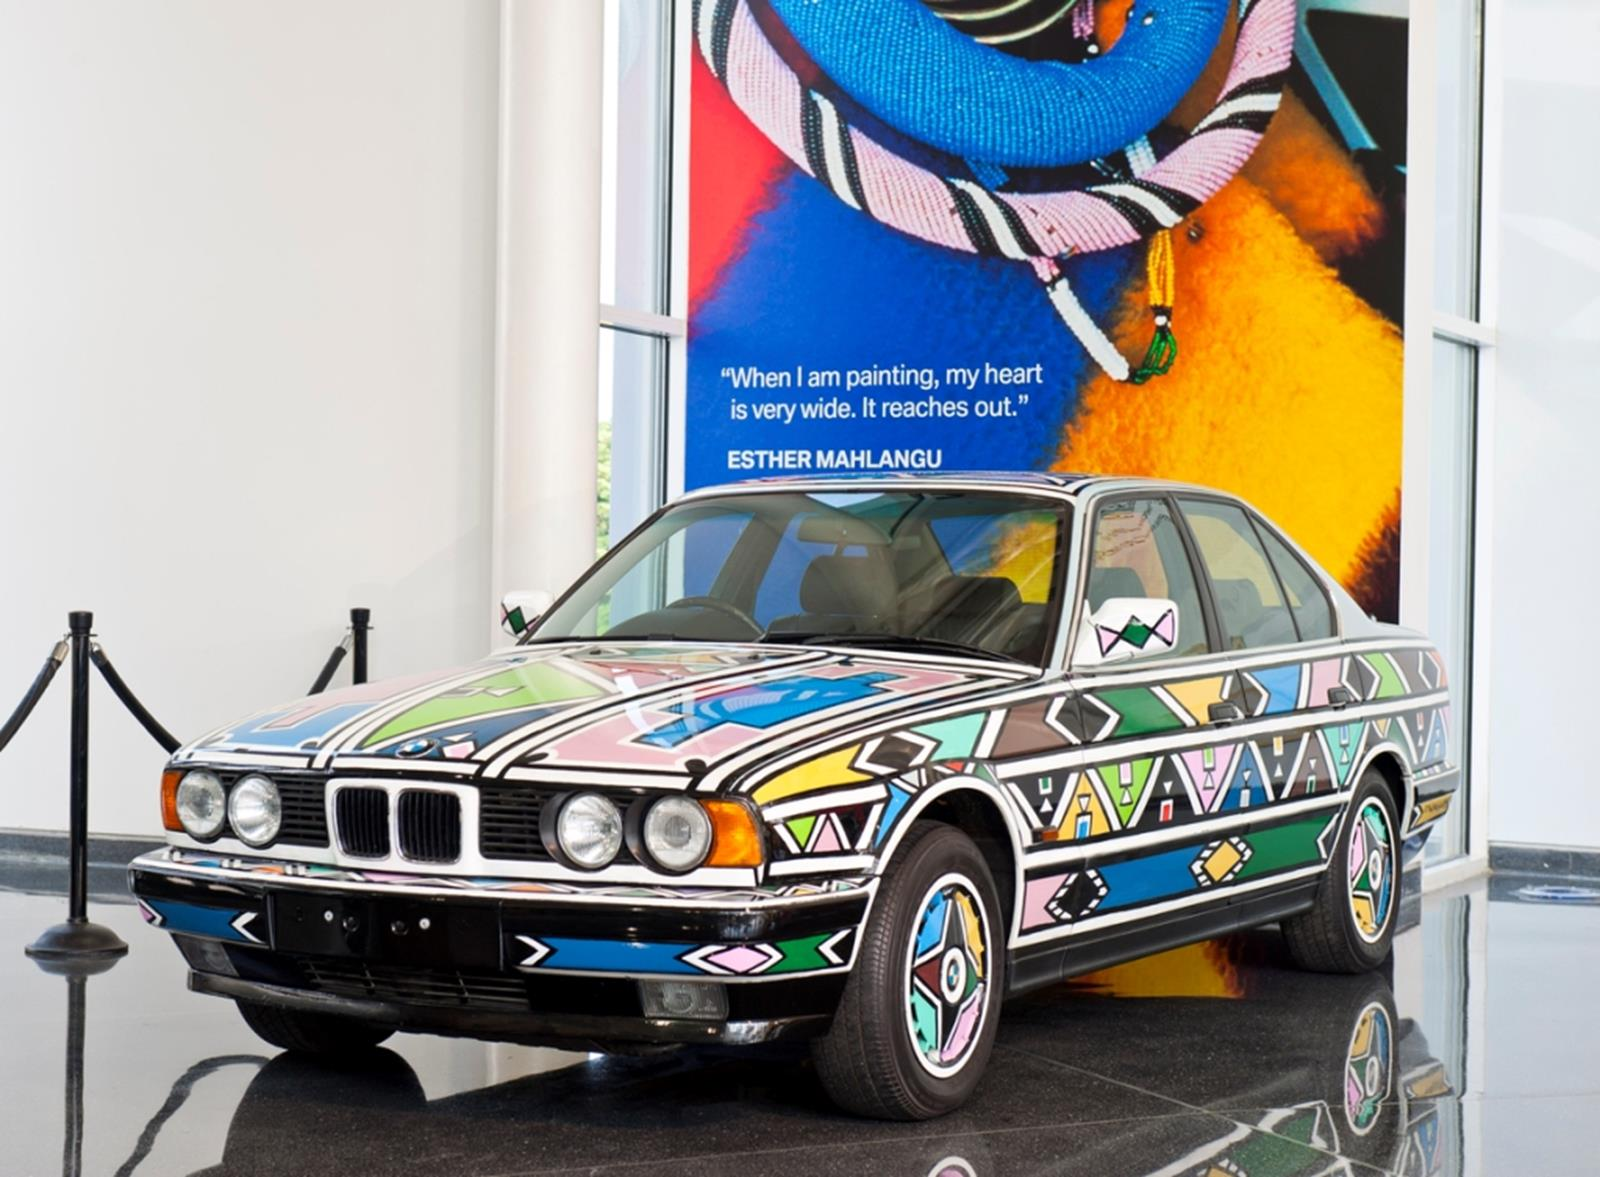 BMW car painted by artist Esther Mahlangu on display in the Zentrum on May 24, 2011. Credit: Visit Greenville SC